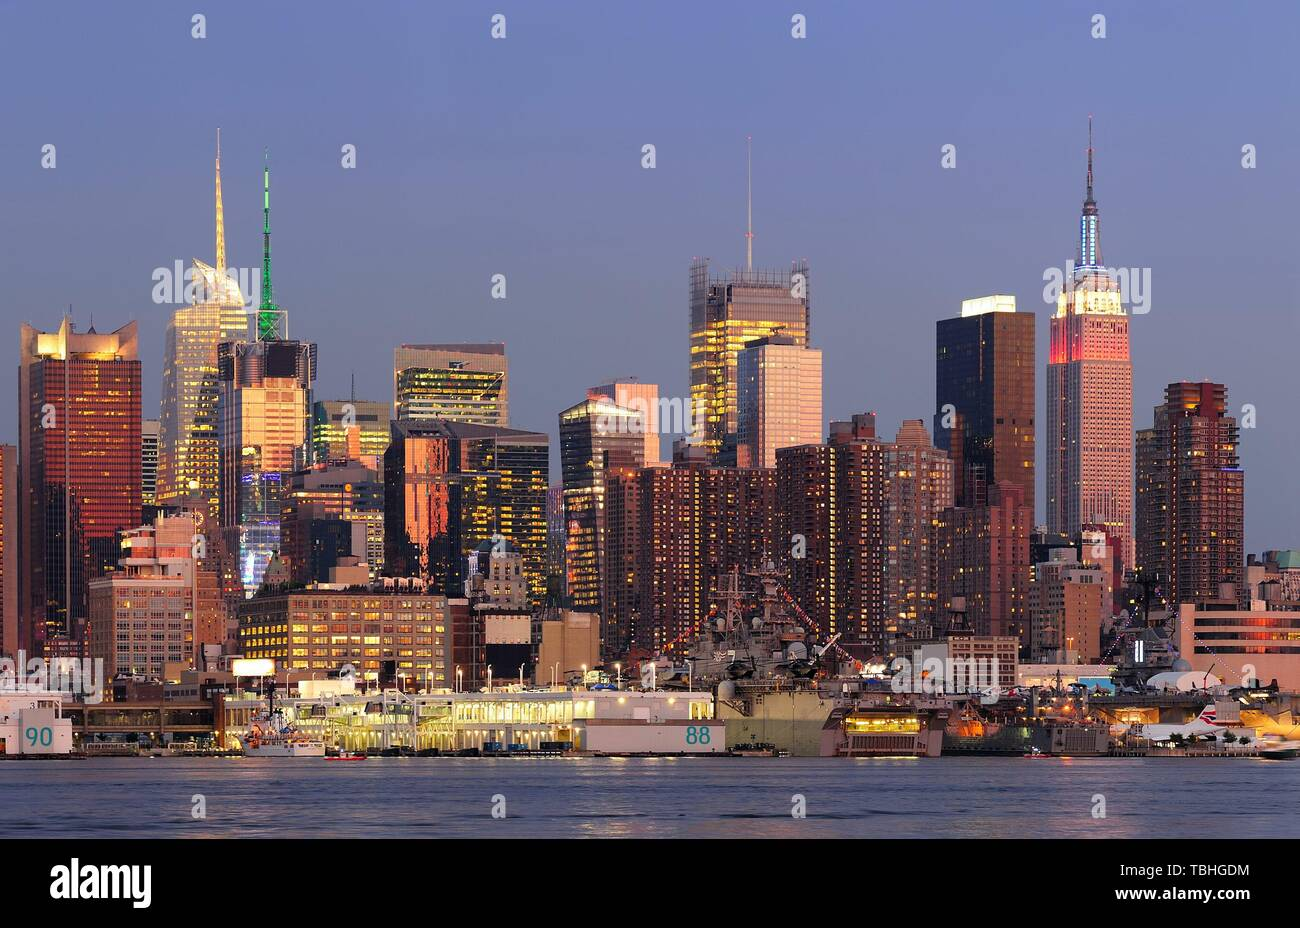 New York City Manhattan sunset panorama with historical skyscrapers over Hudson River with beautiful red color sunshine reflection viewed from New Jersey Weehawken waterfront. Stock Photo